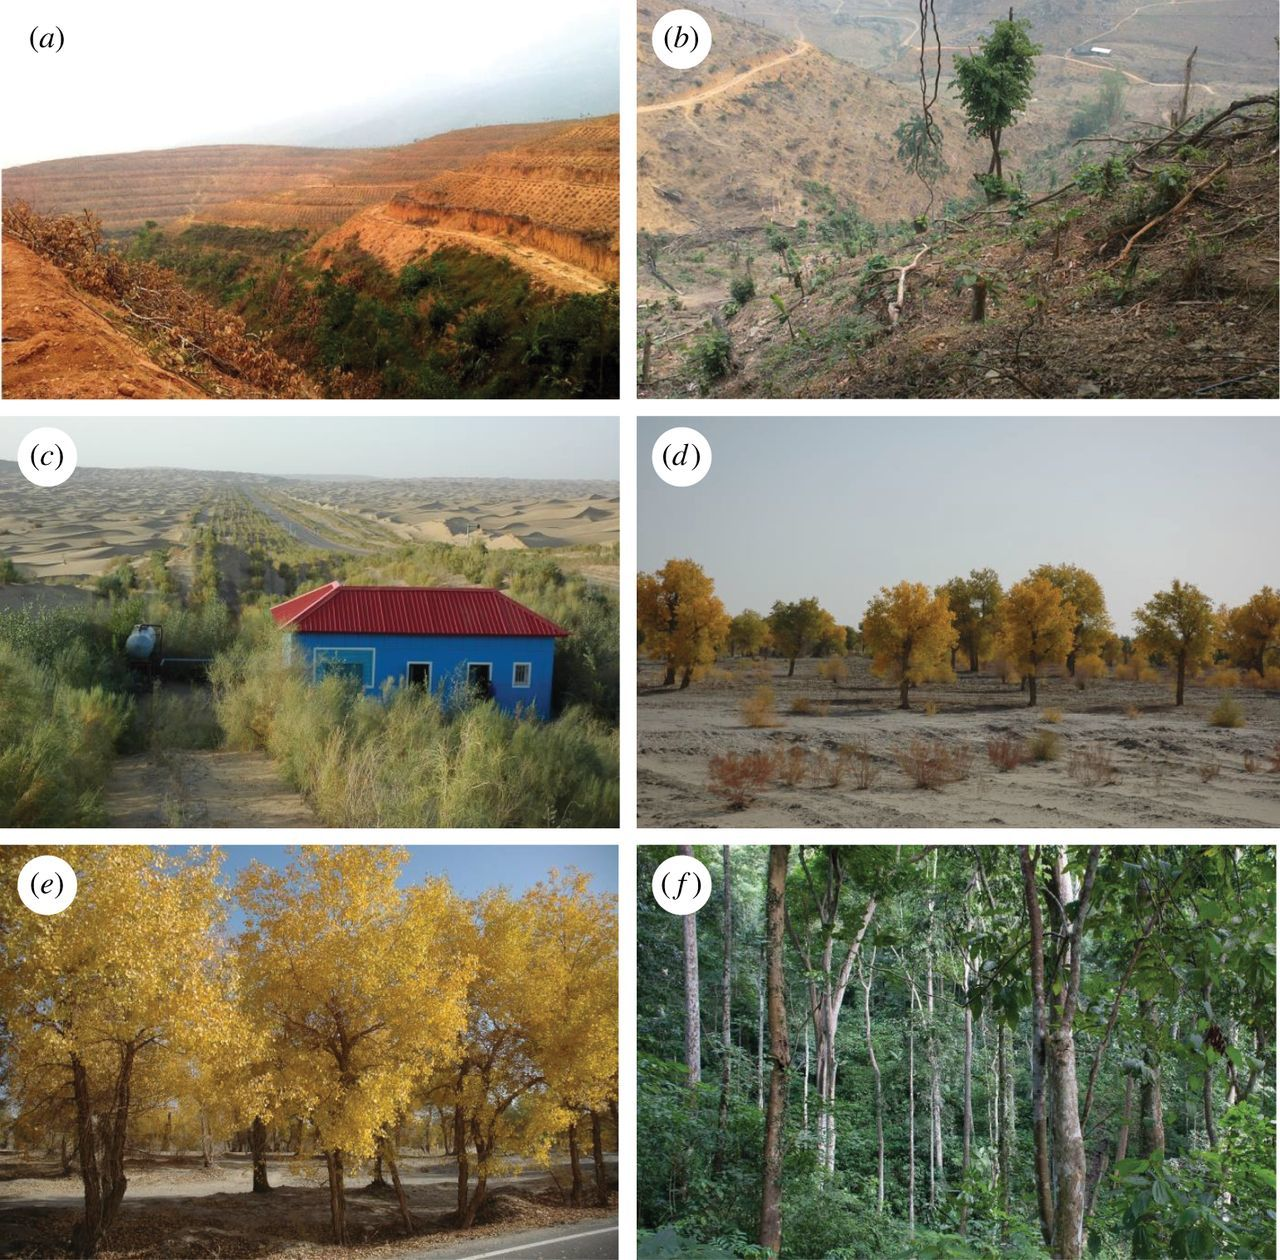 China's fight to halt tree cover loss | Proceedings of the